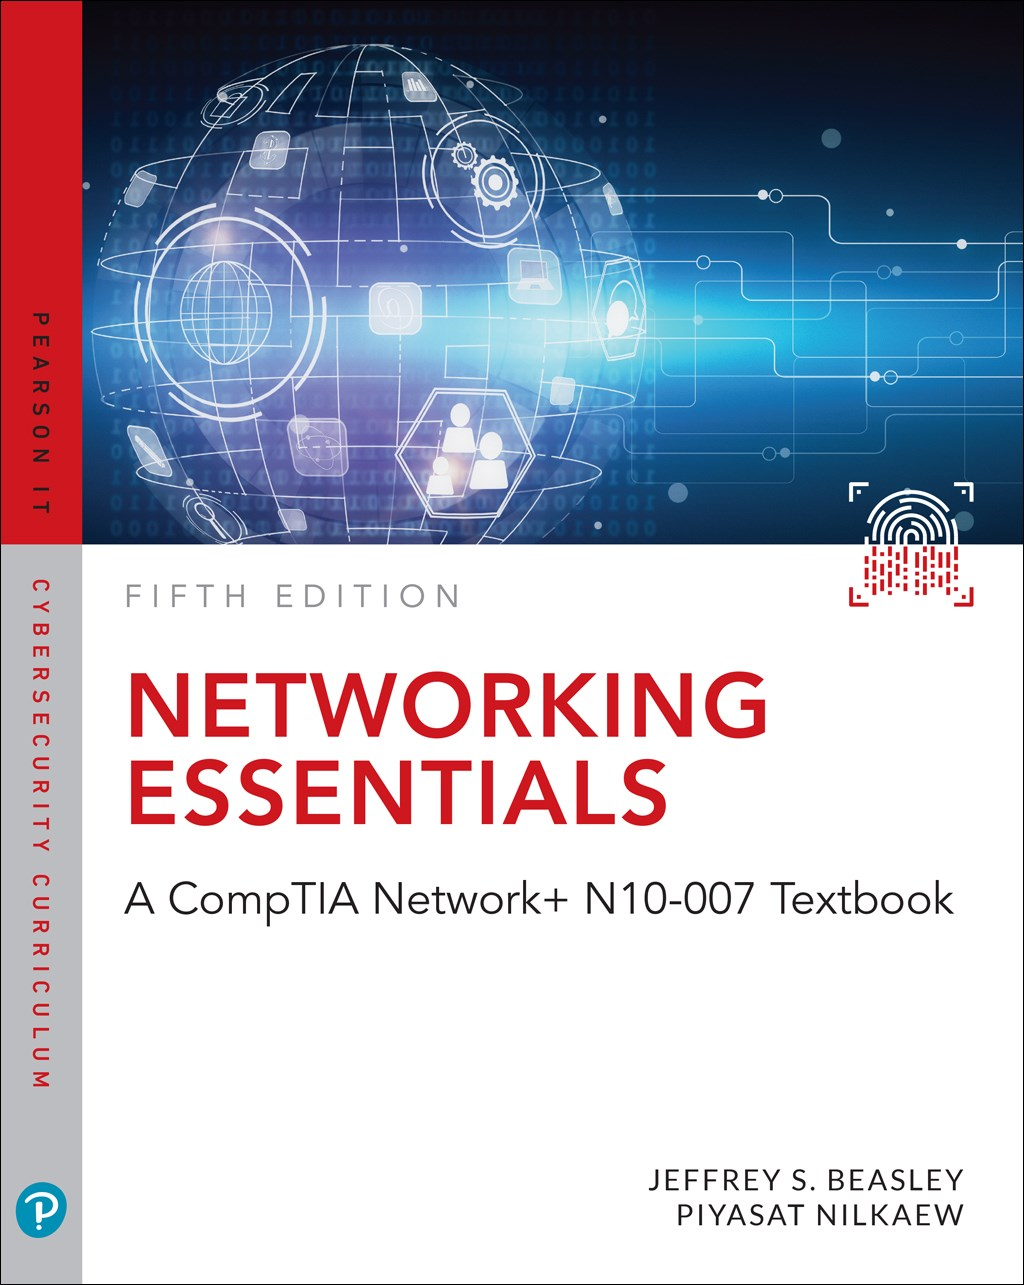 Networking essentials a comptia network n10 007 textbook 5th networking essentials a comptia network n10 007 textbook 5th edition fandeluxe Image collections